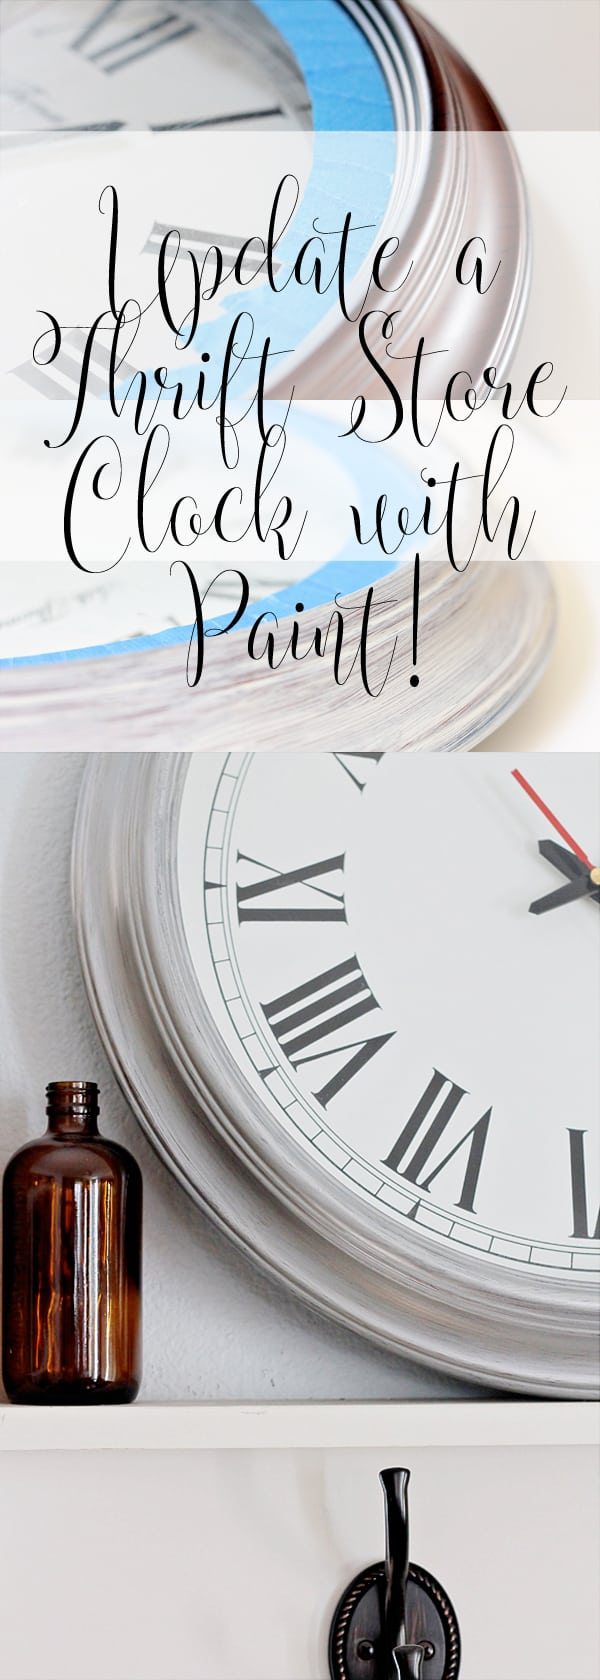 Update a Thrift Store Clock with Paint - It's Quick and Easy